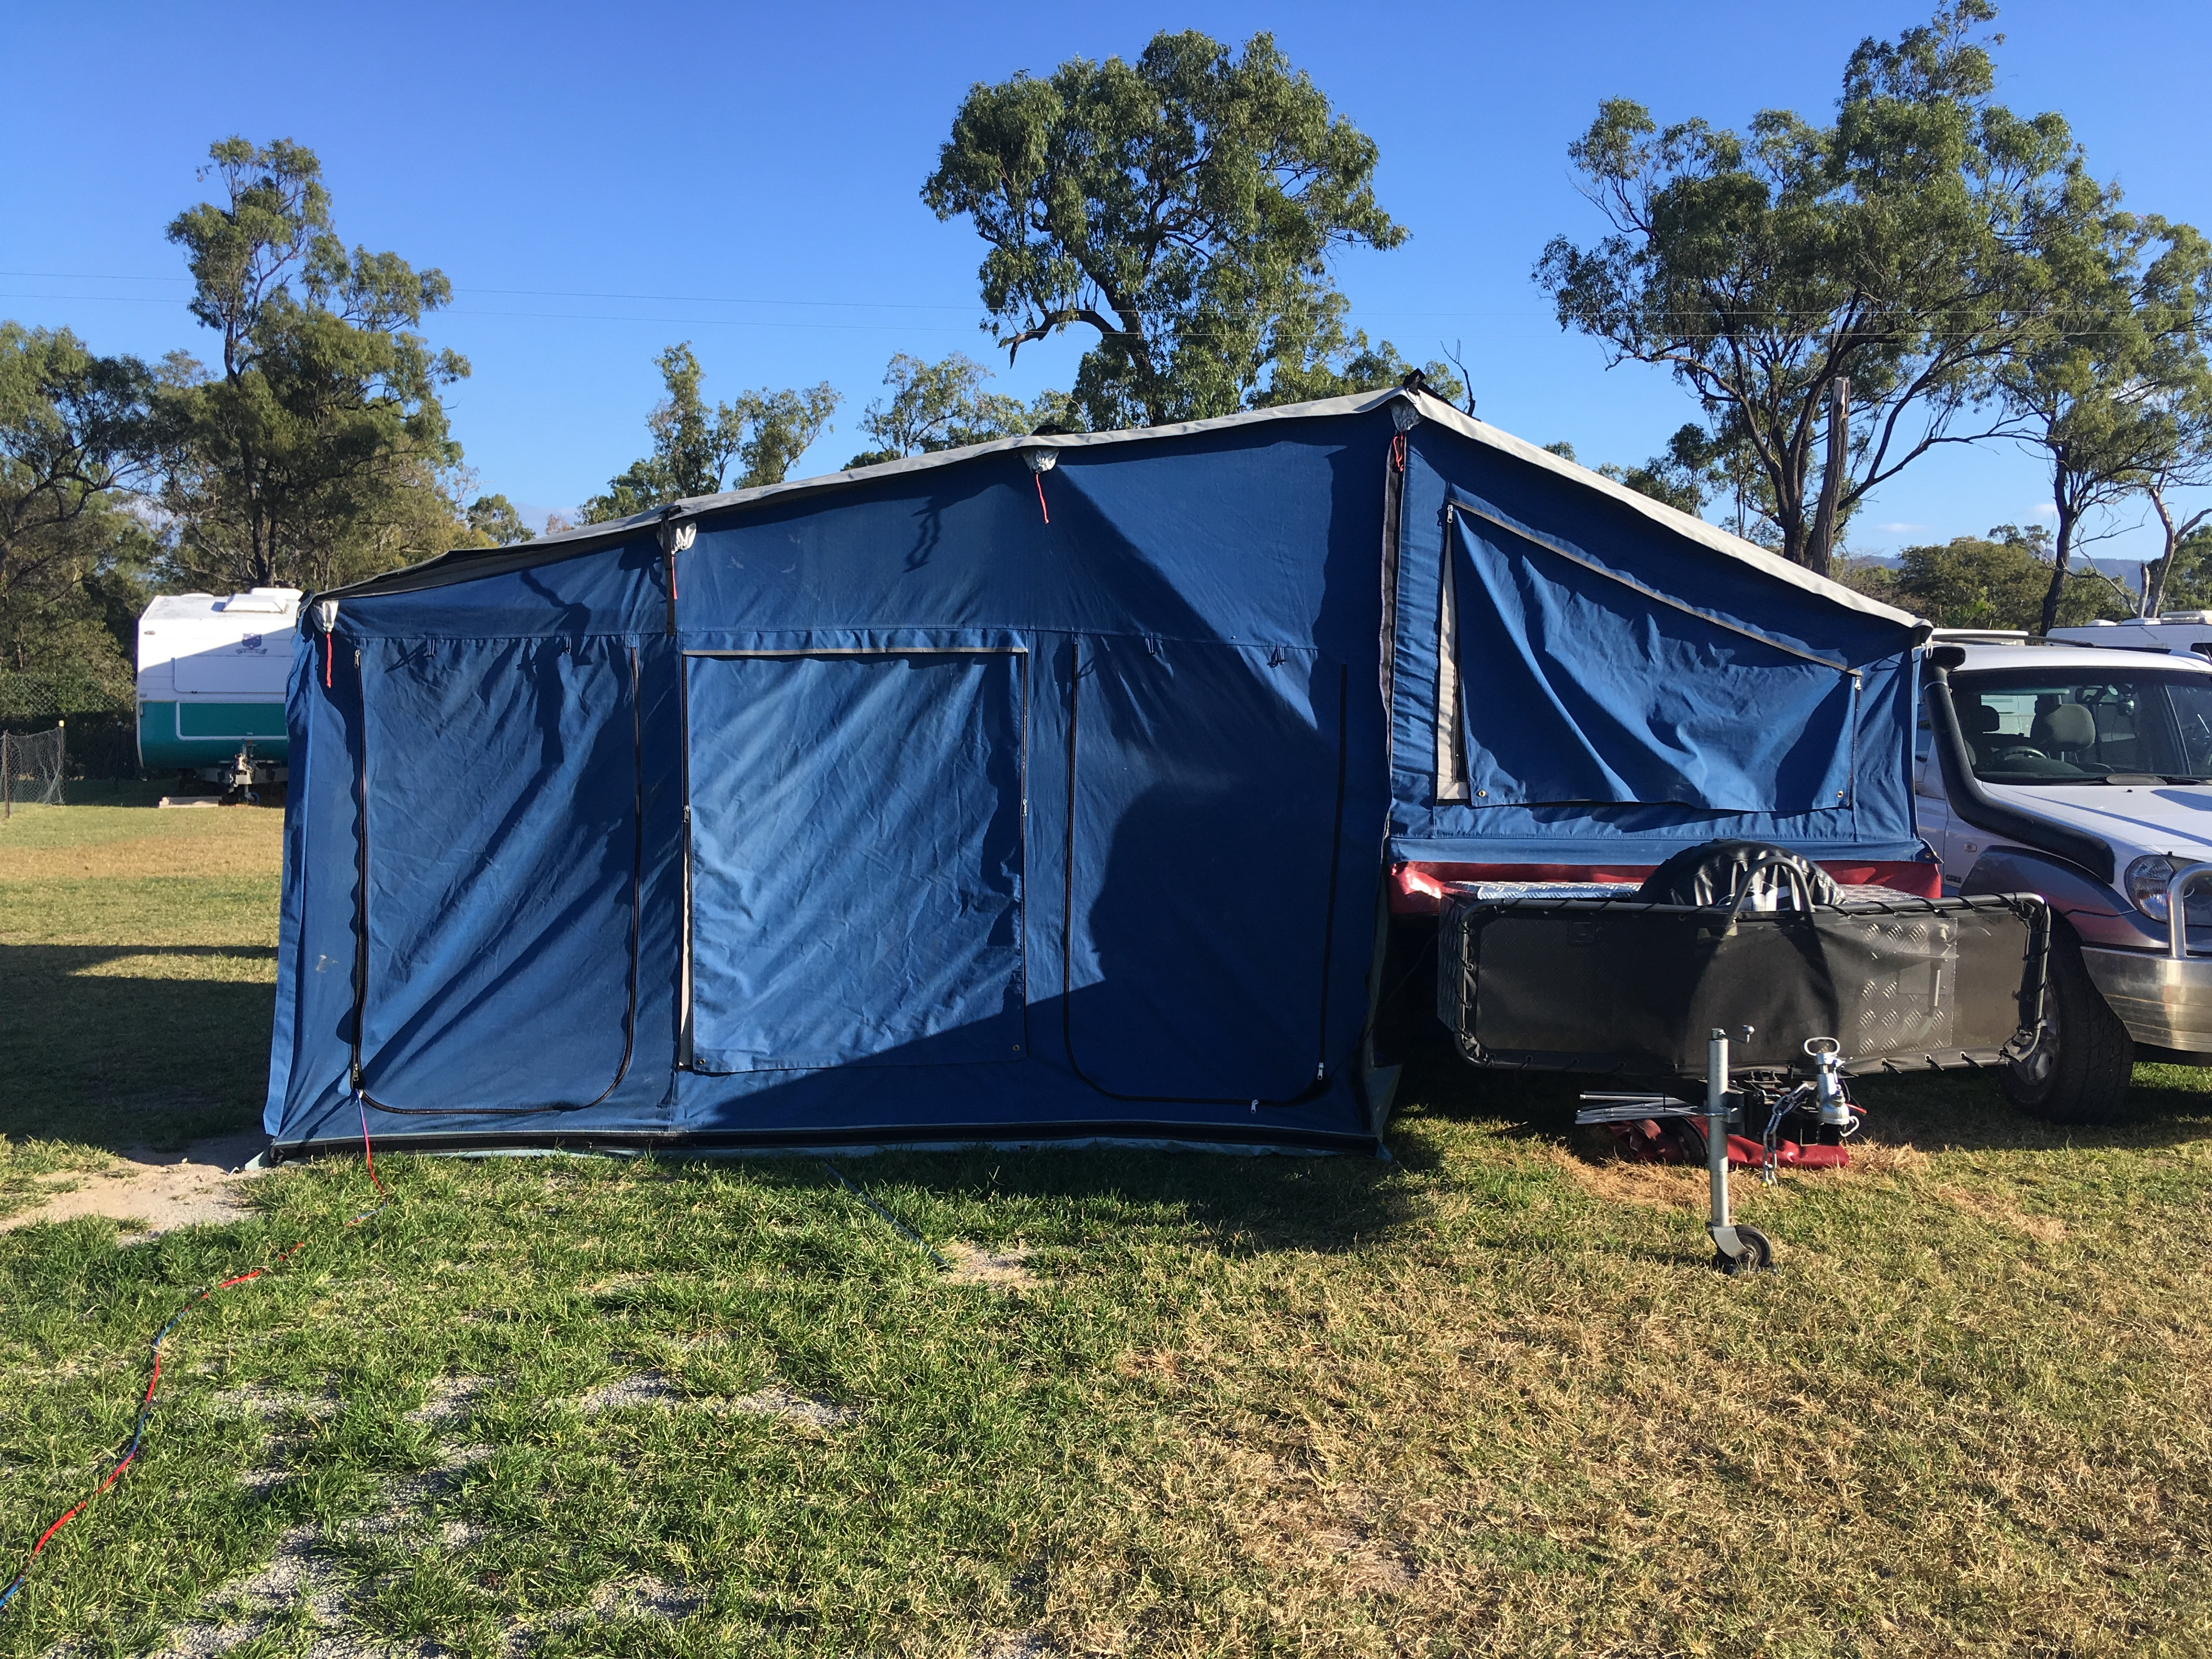 Ben & Michelle - Road Trip Around Australia - Is the Camper Trailer our Ideal Set-Up?